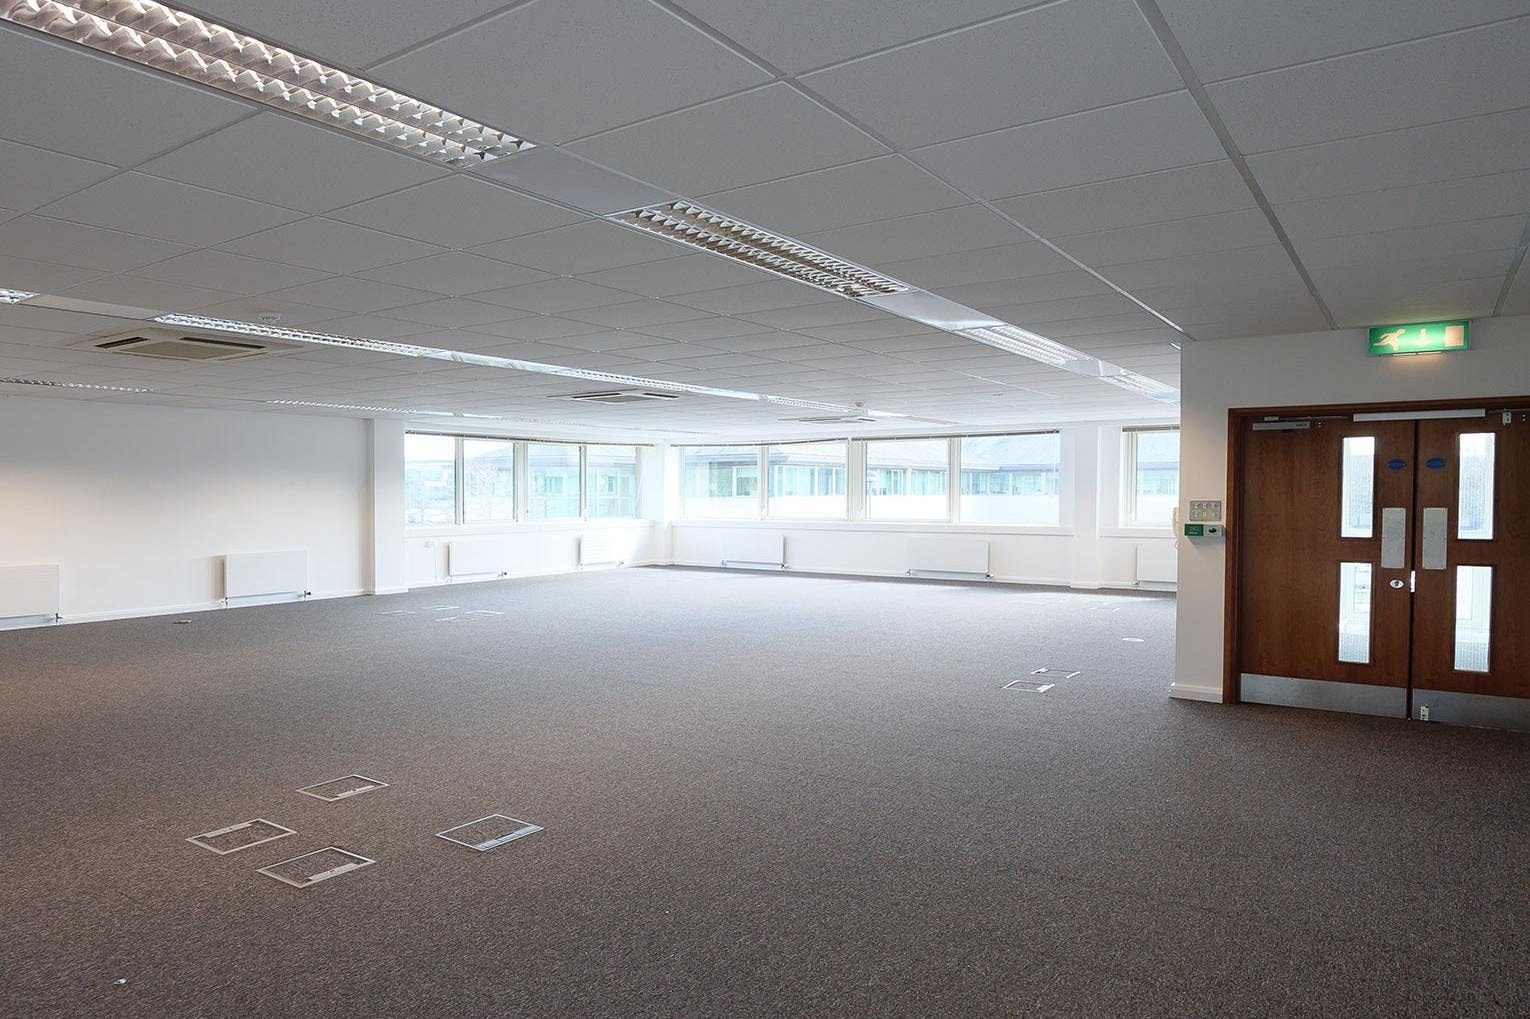 4 Lindenwood, Basingstoke, Office To Let - 5-6-Lindenwood_2-1024x512@2x.jpg